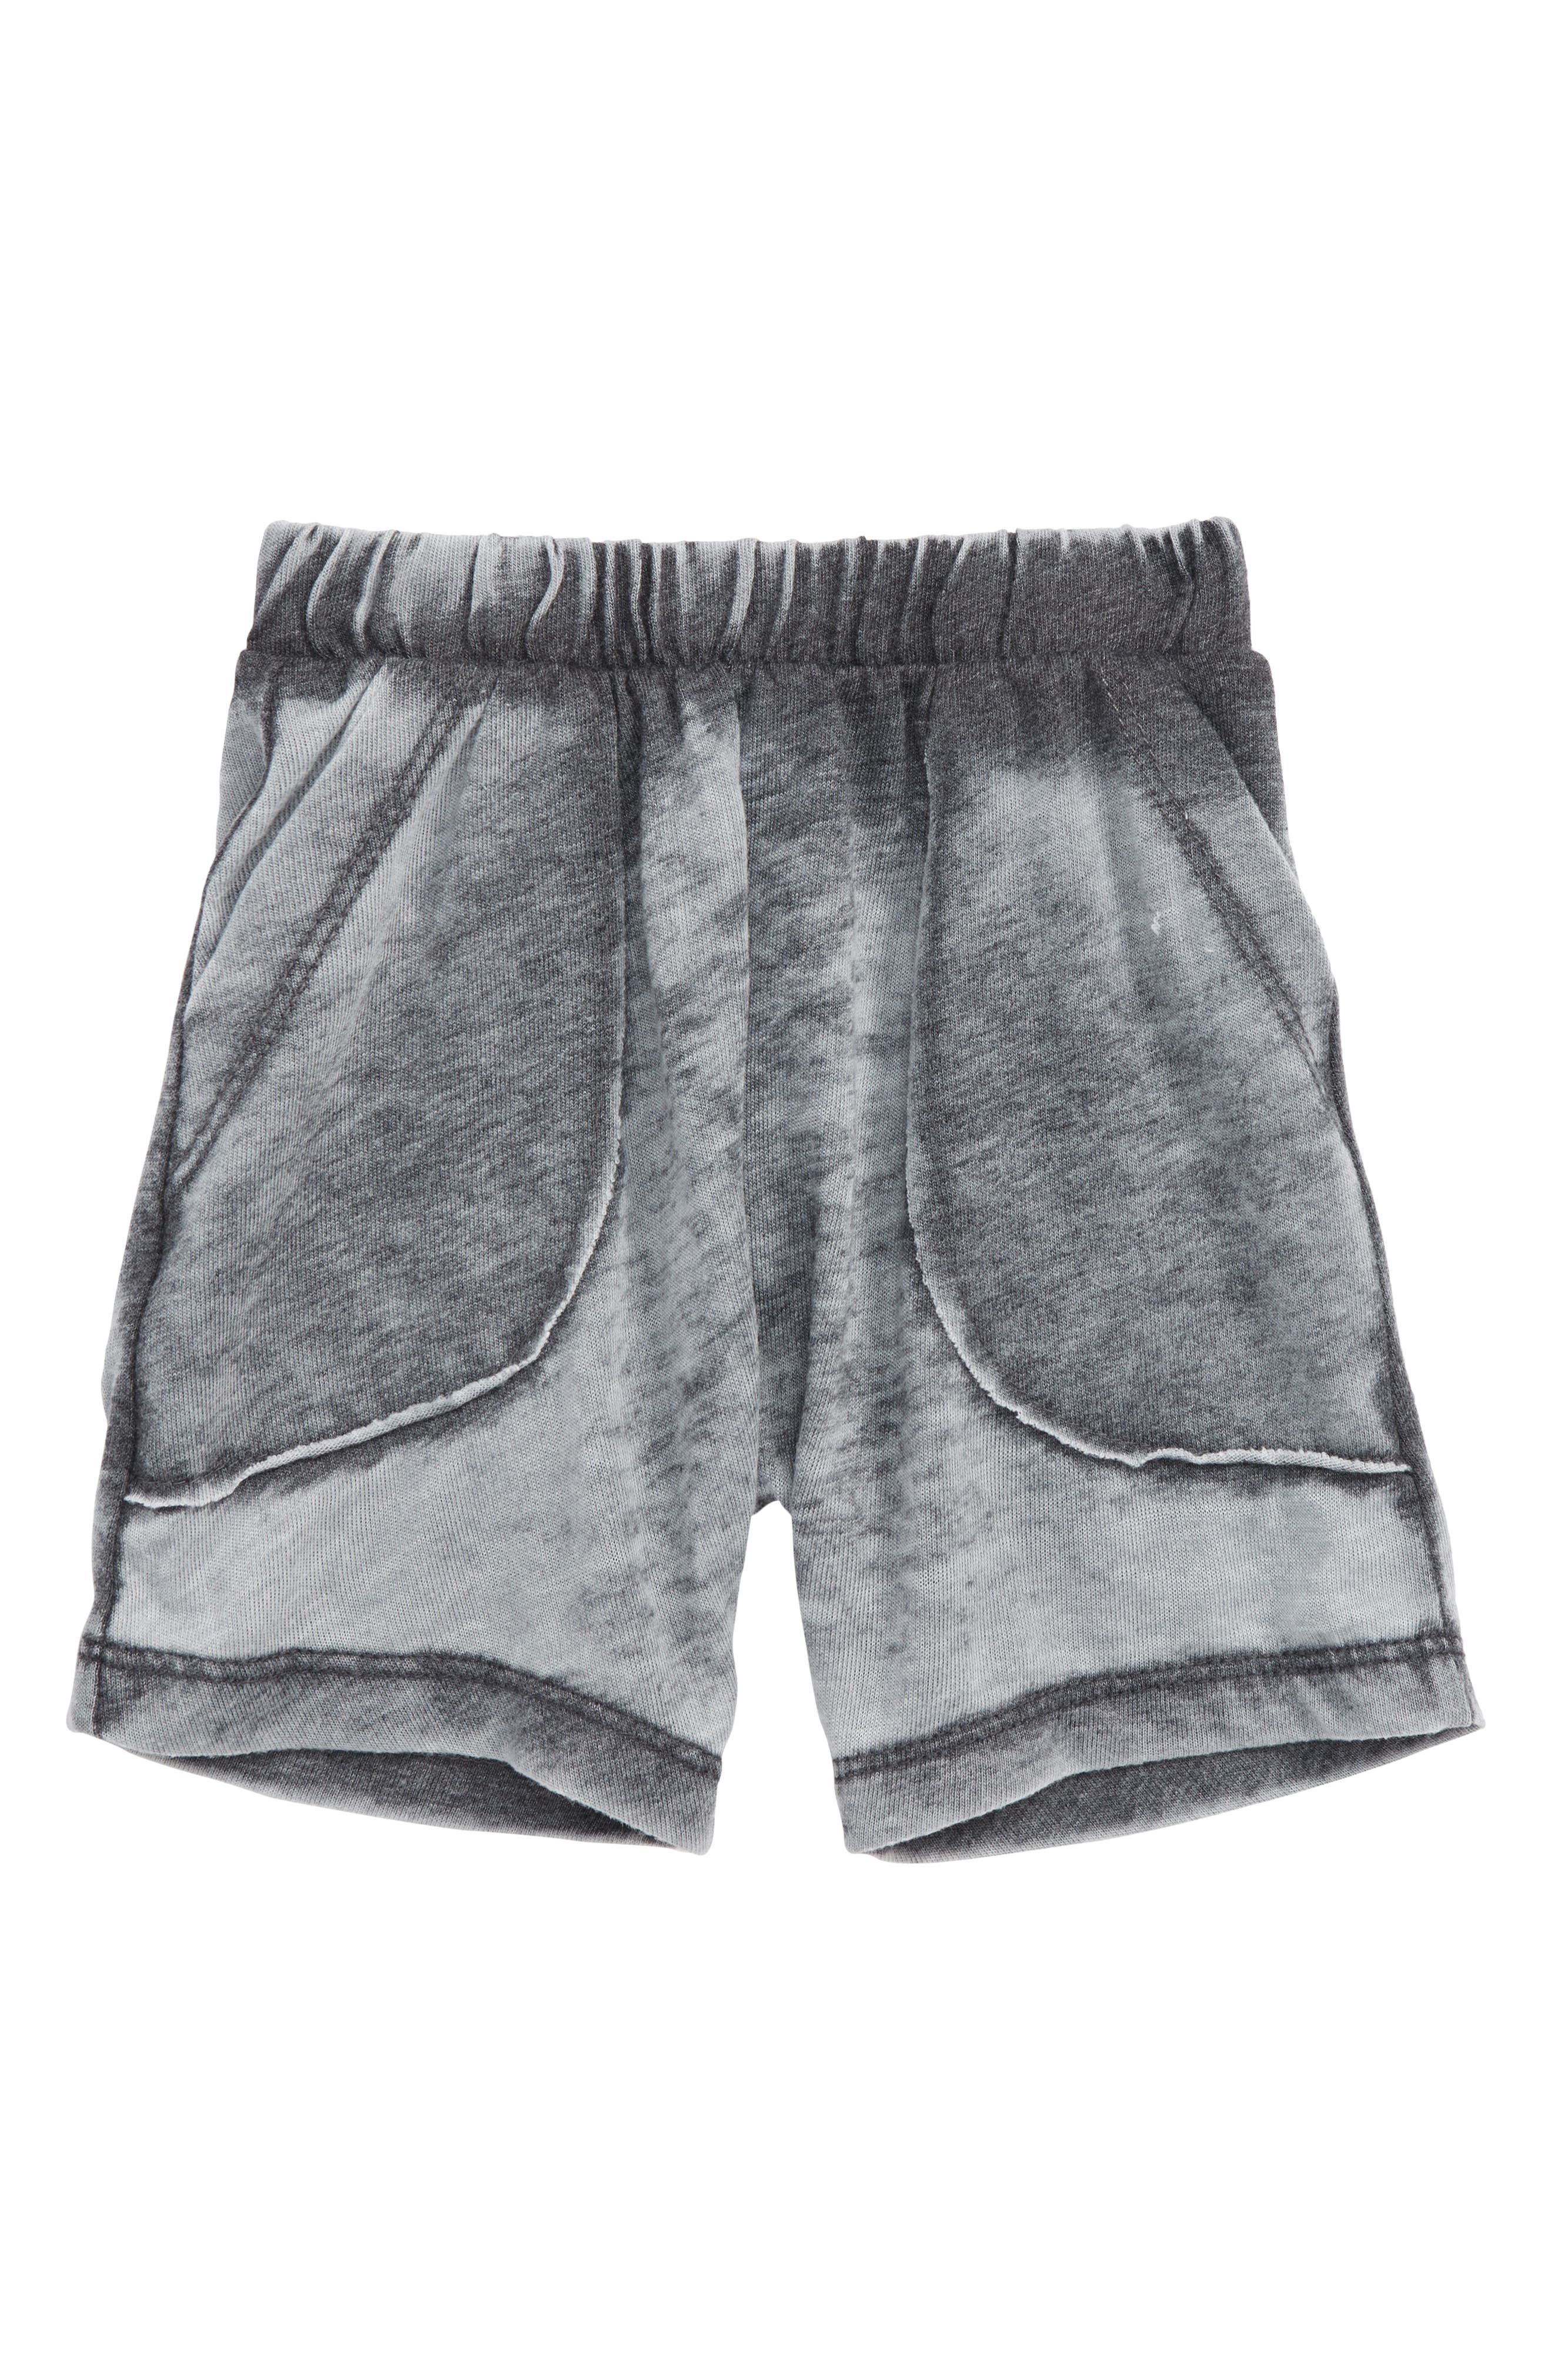 Knit Shorts,                         Main,                         color, Smokey Black